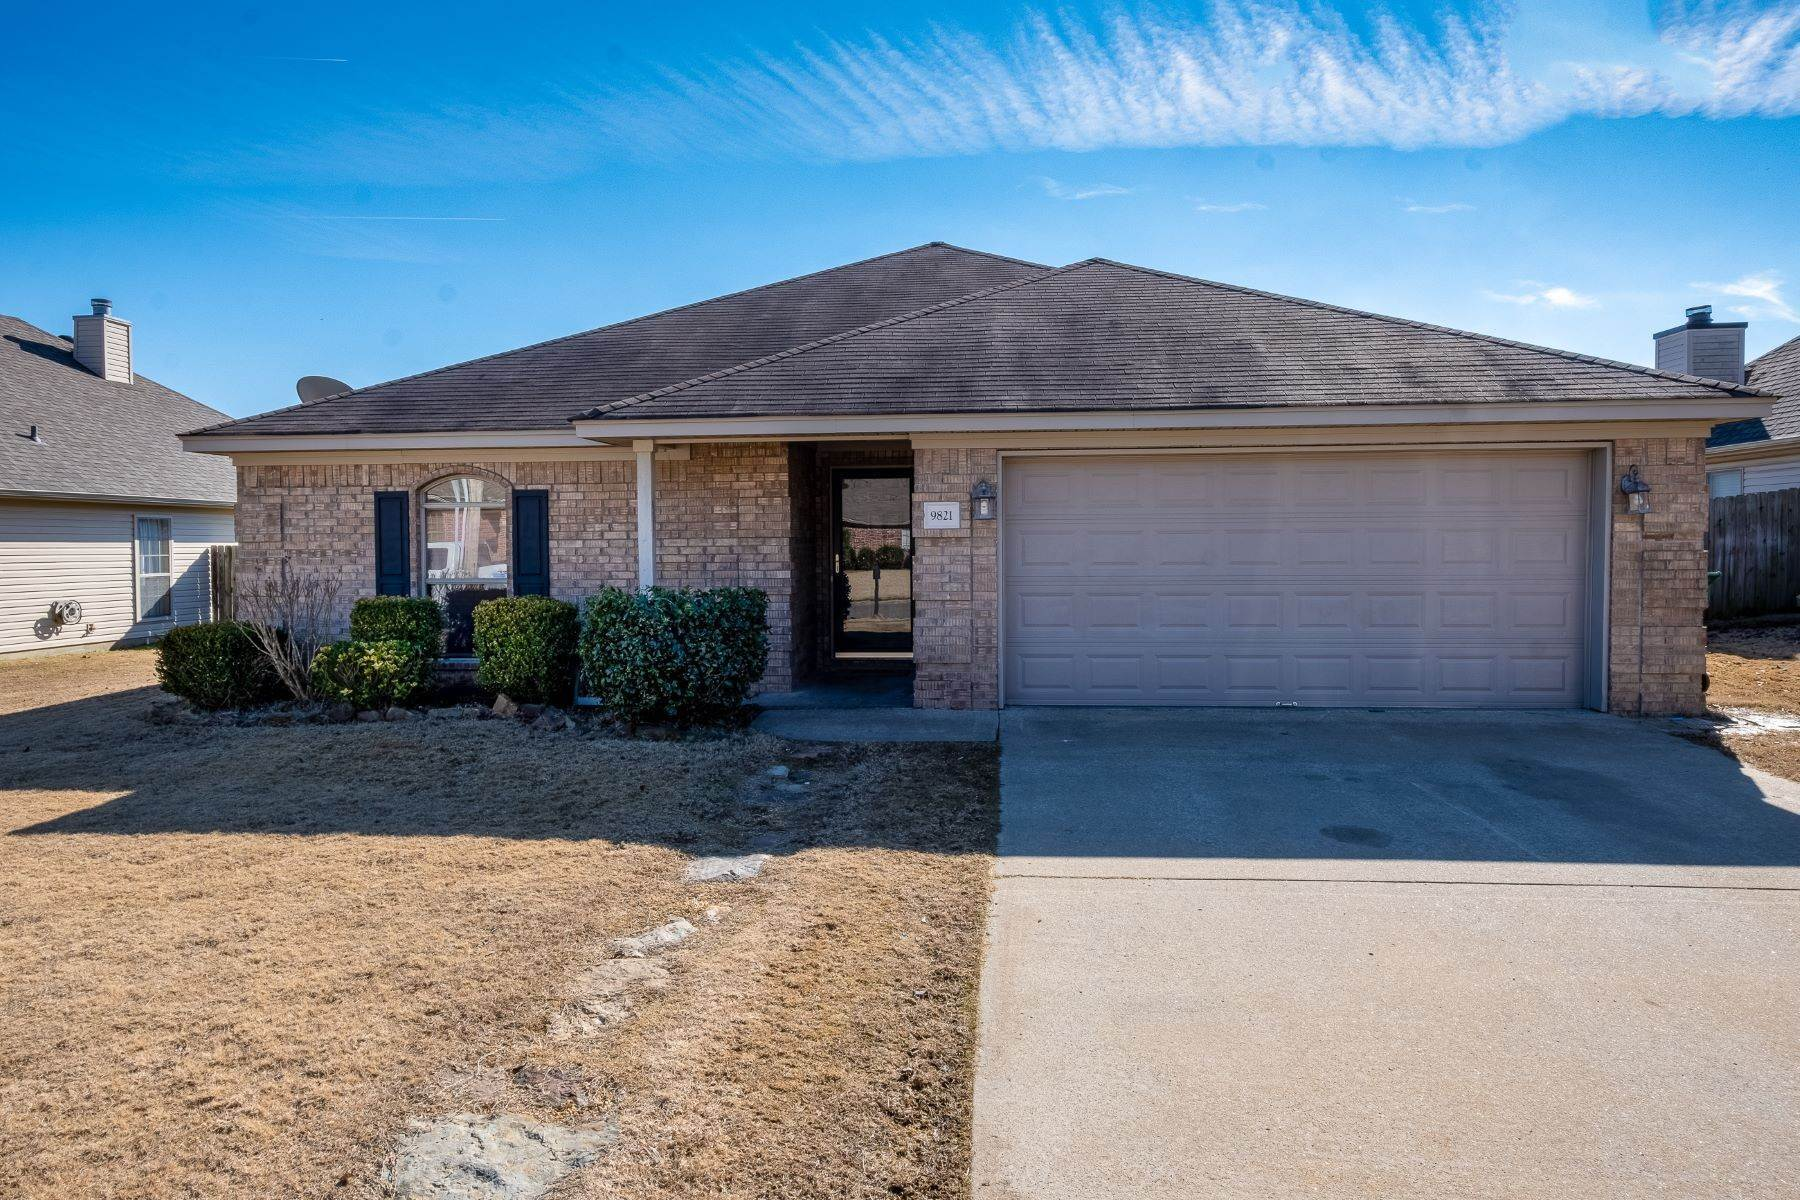 Single Family Homes at 9821 Merlot, North Little Rock, Ar, 72113 9821 Merlot North Little Rock, Arkansas 72113 United States